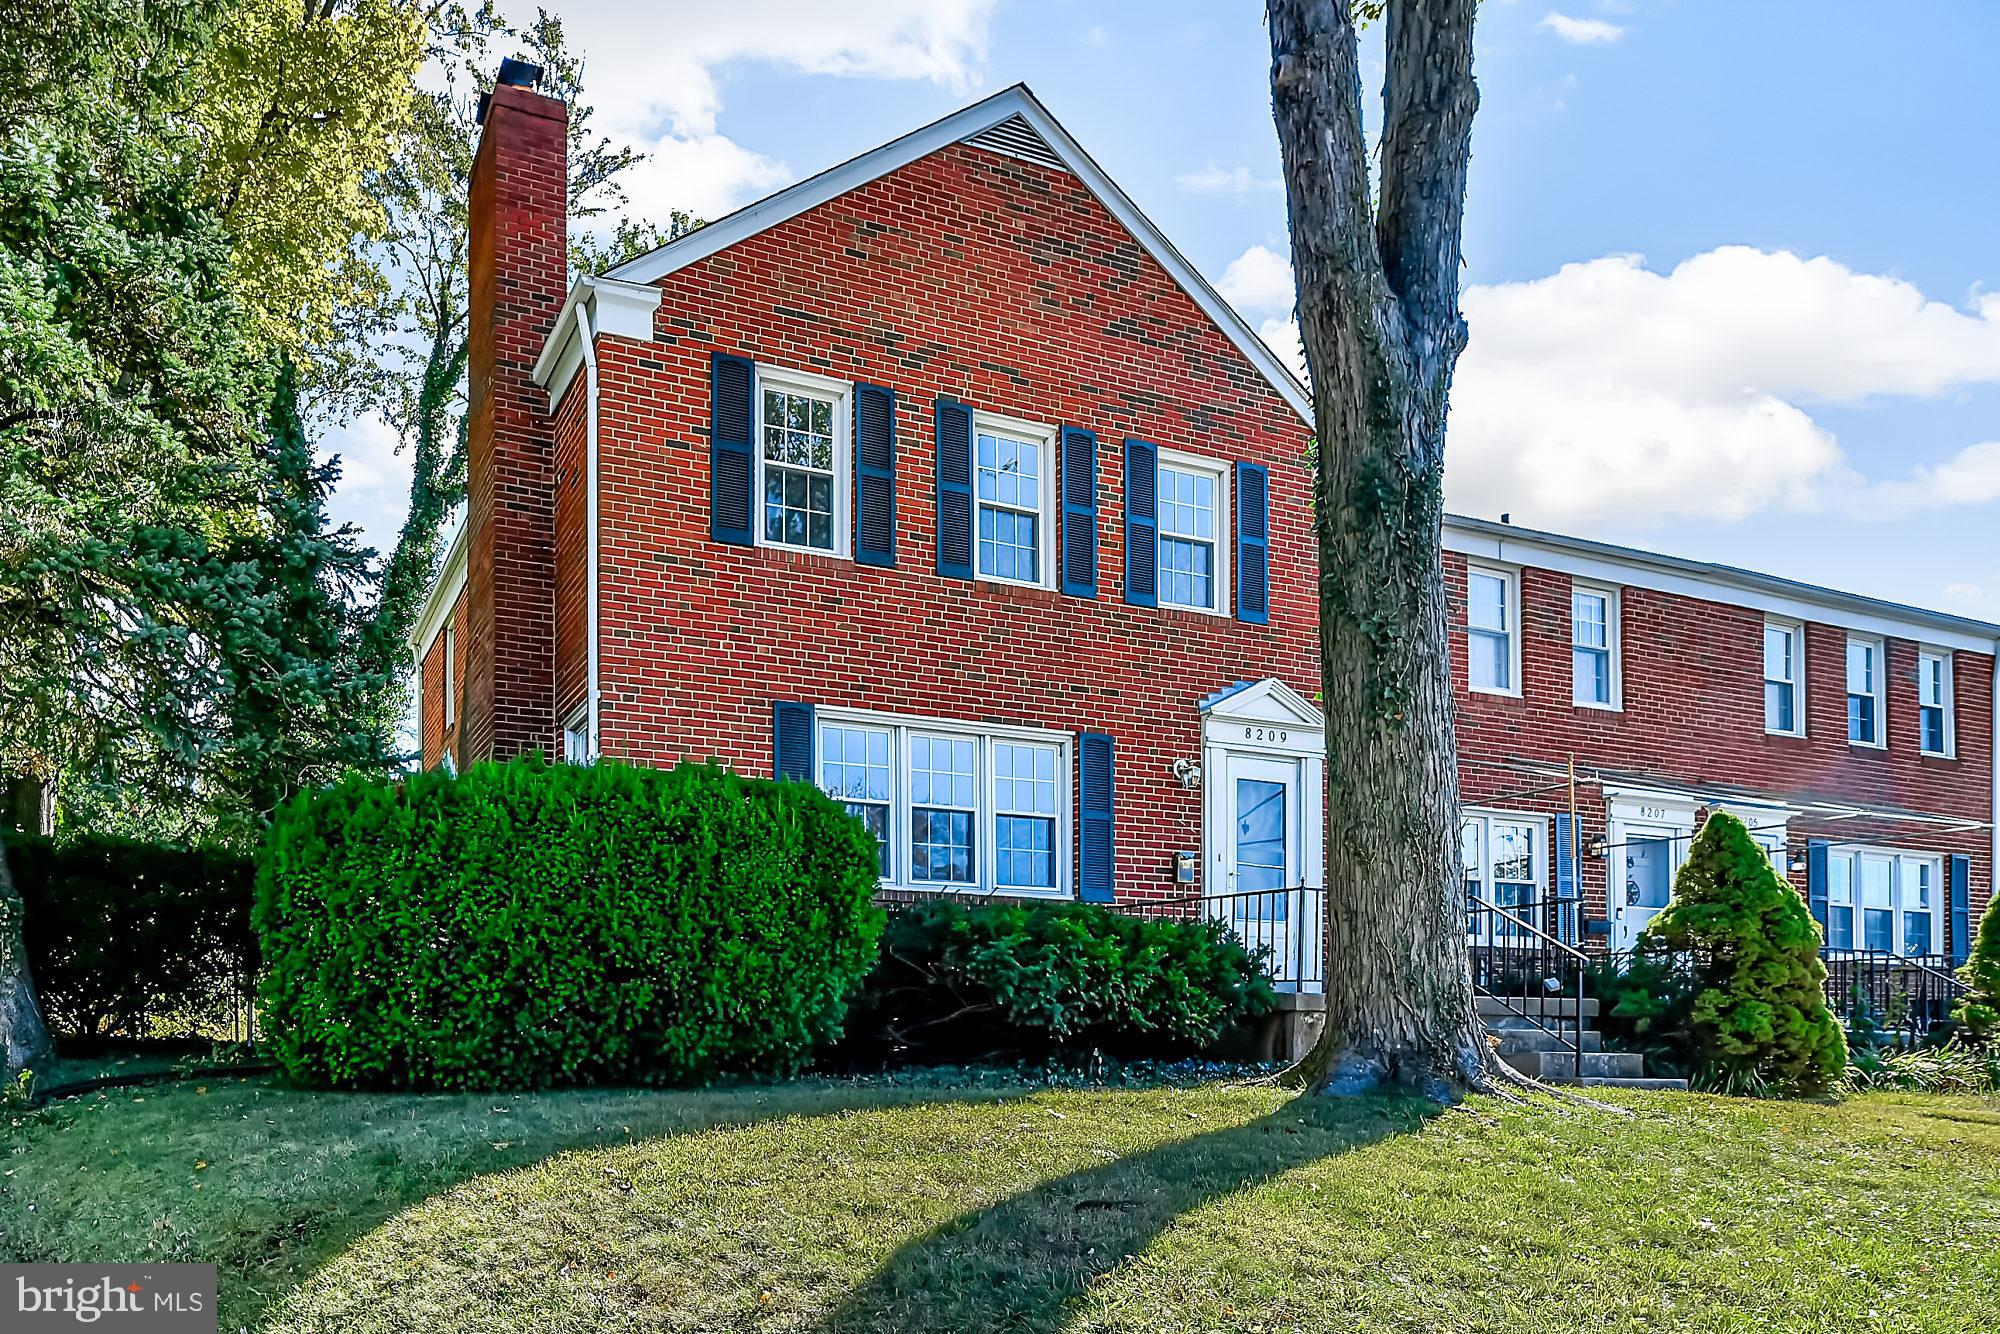 This renovated End Of Group in Loch Raven Village was the model home for the community! All of the best LRV has to offer; FOUR bedrooms, roof was replaced 8 years ago, replacement windows with bow in DR, hardwood floors, TWO fireplaces, granite counters, new HVAC, fenced in yard w/ parking and so much more. Across the street from Calvert Hall fields, and nearby to shopping and convenient access to 695 and more. The renovations were JUST completed making this home move in ready for YOU!